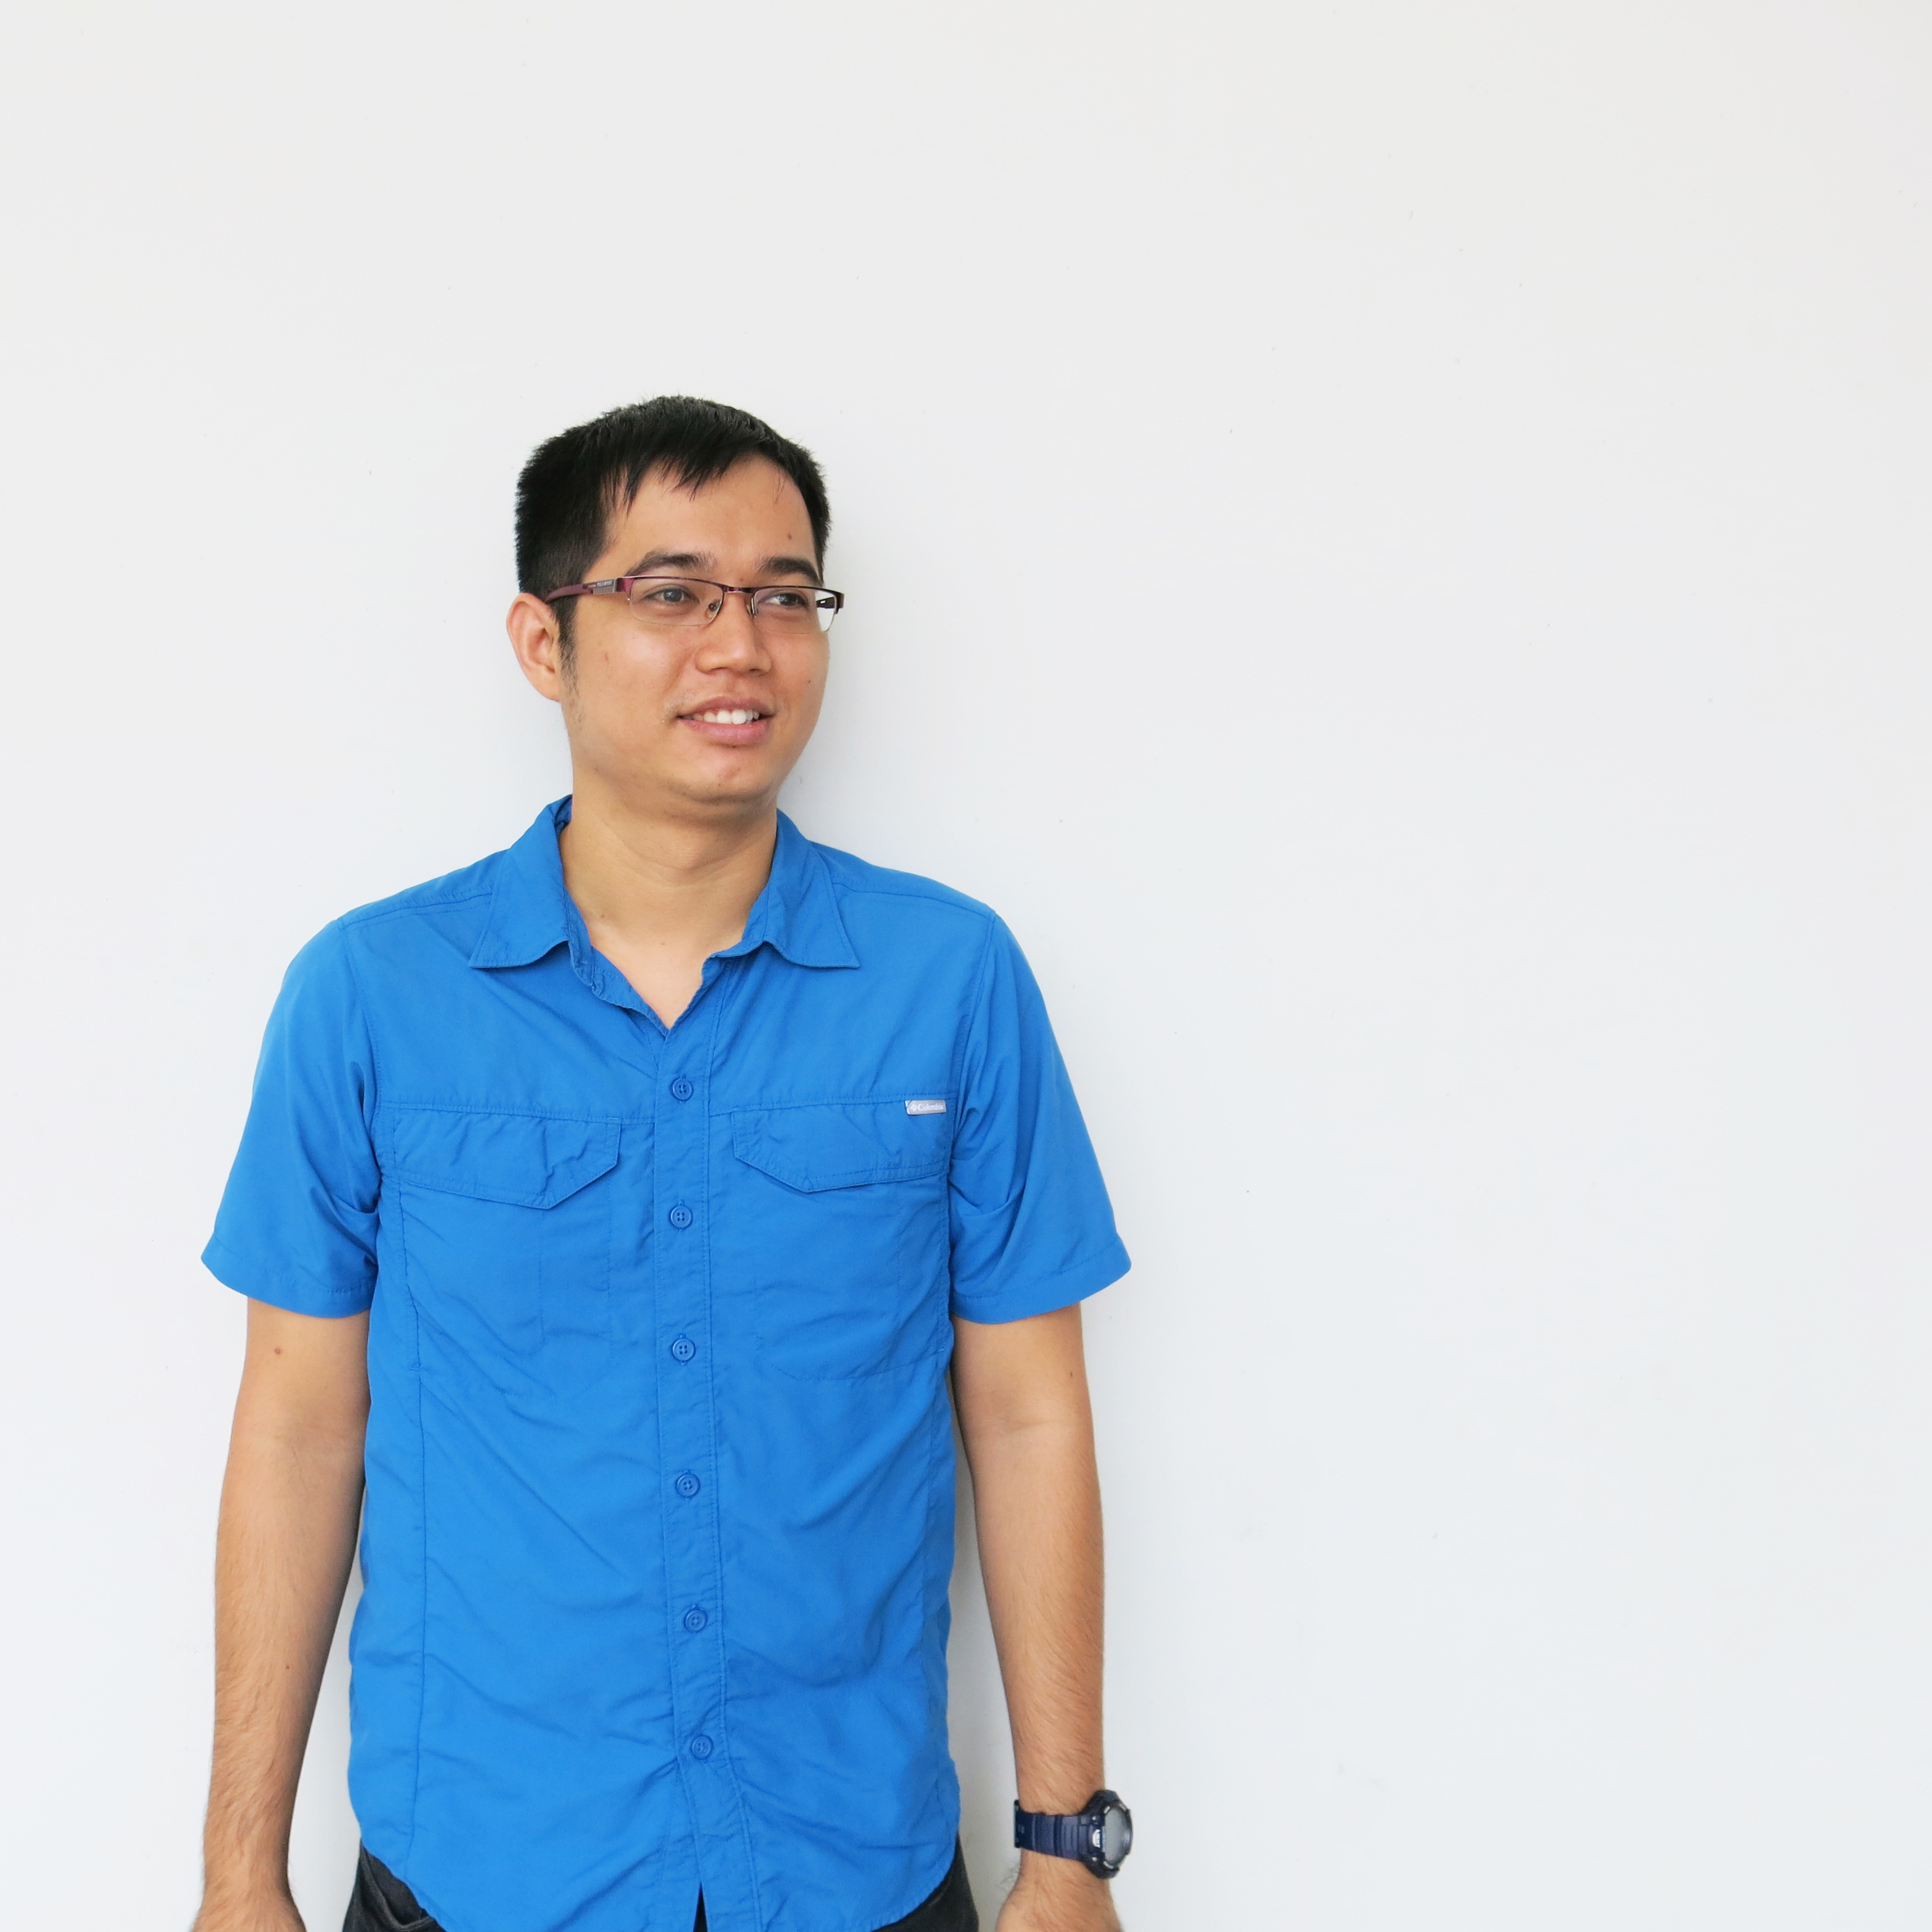 PETER CHAU   Senior Engineer   As our Senior engineer in A Y Consultants, Peter brings a wealth of experience in engineering design and compliance with codes and practices. He often immerses himself with his work and this inspires his colleagues to emulate his passion and focus. Though seemingly a quiet and serious person, Peter is (secretly) a table tennis pro, and adores his 3 year old son.